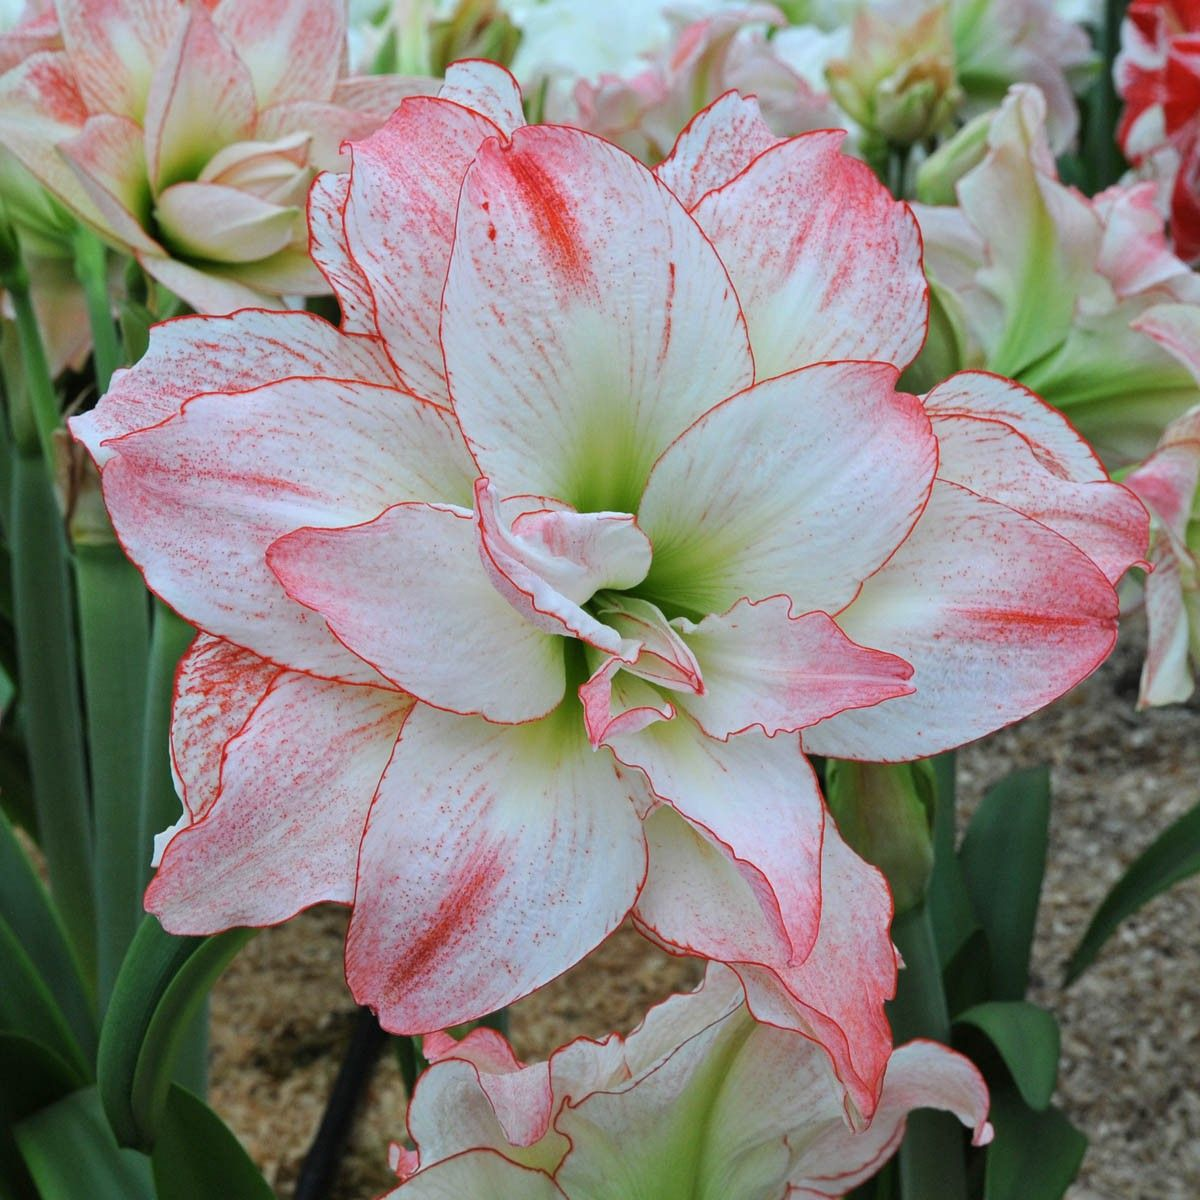 Aphrodite1200dg 12001200 amaryllis pinterest pretty a great short and sturdy plant that blooms with delightful flowers hardly any amaryllis can touch her beauty there is a reason why they named her after izmirmasajfo